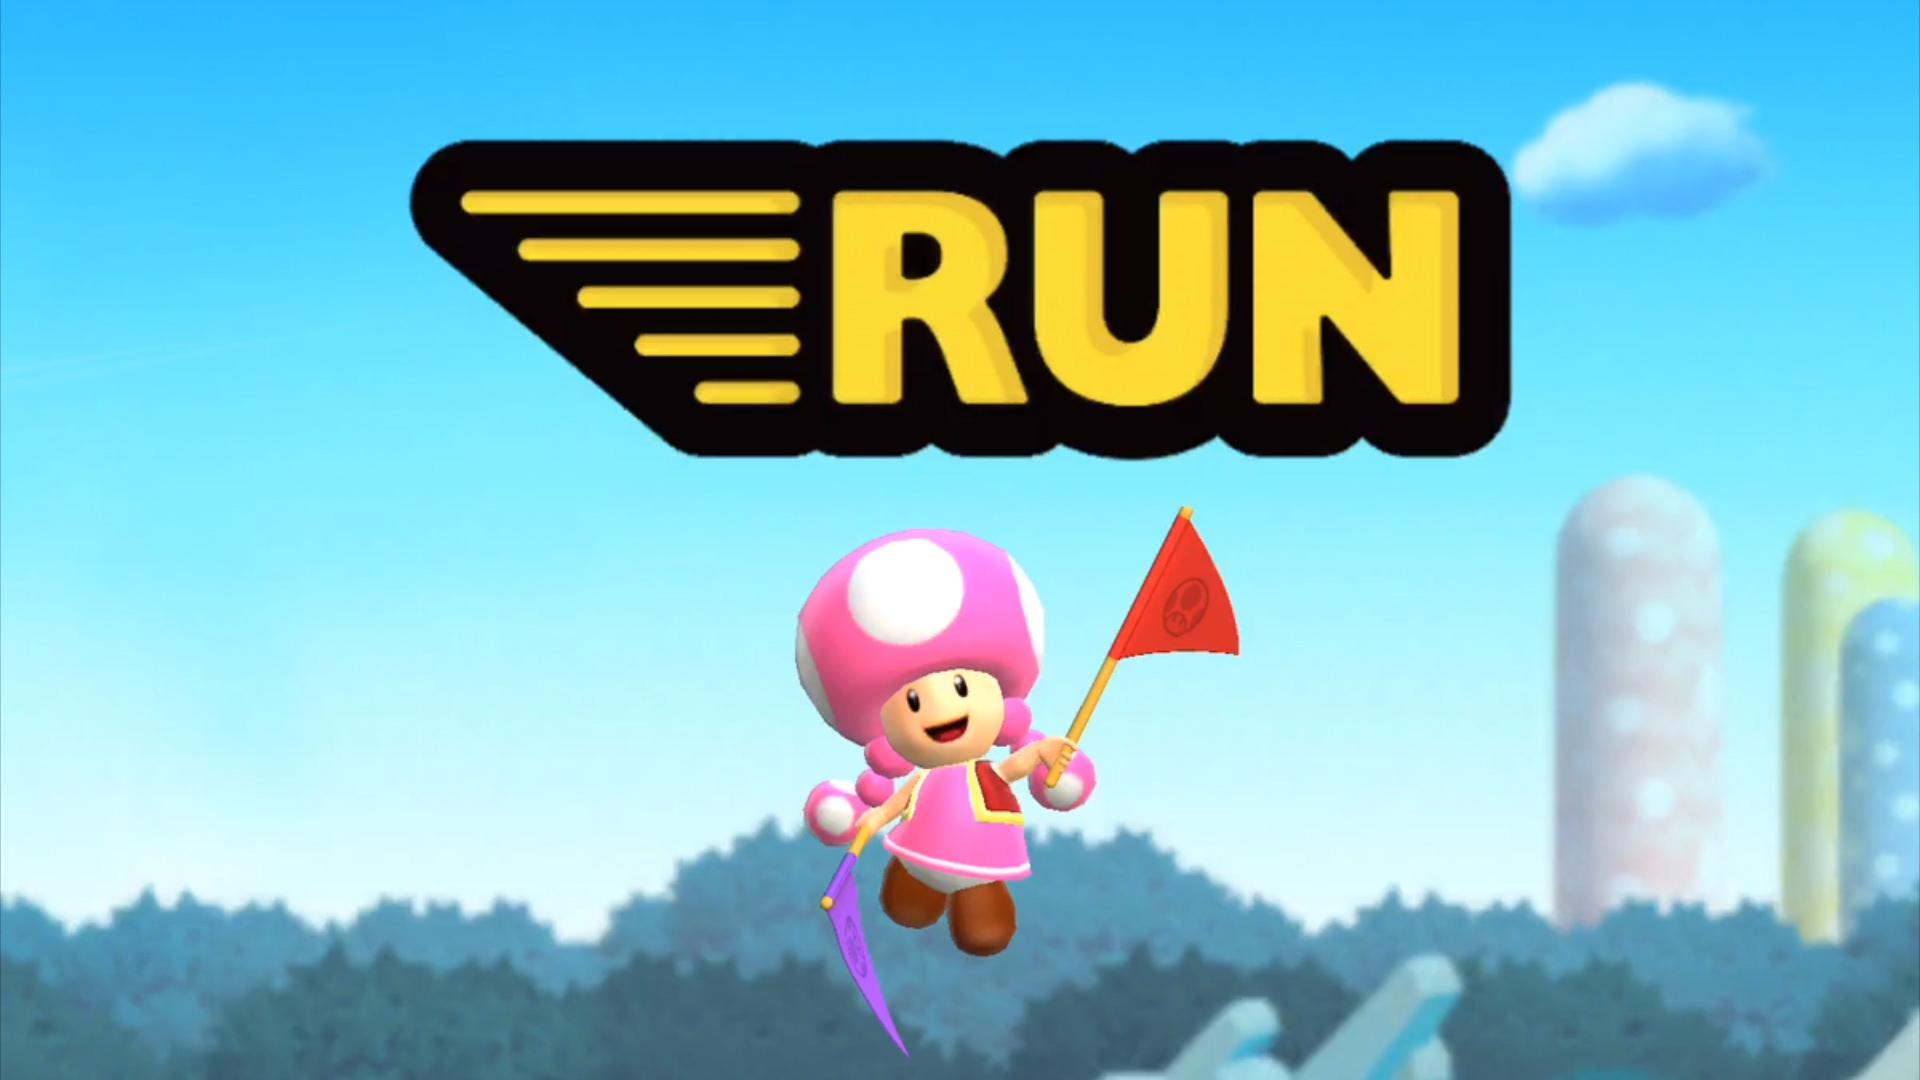 Super Mario Run is available to play